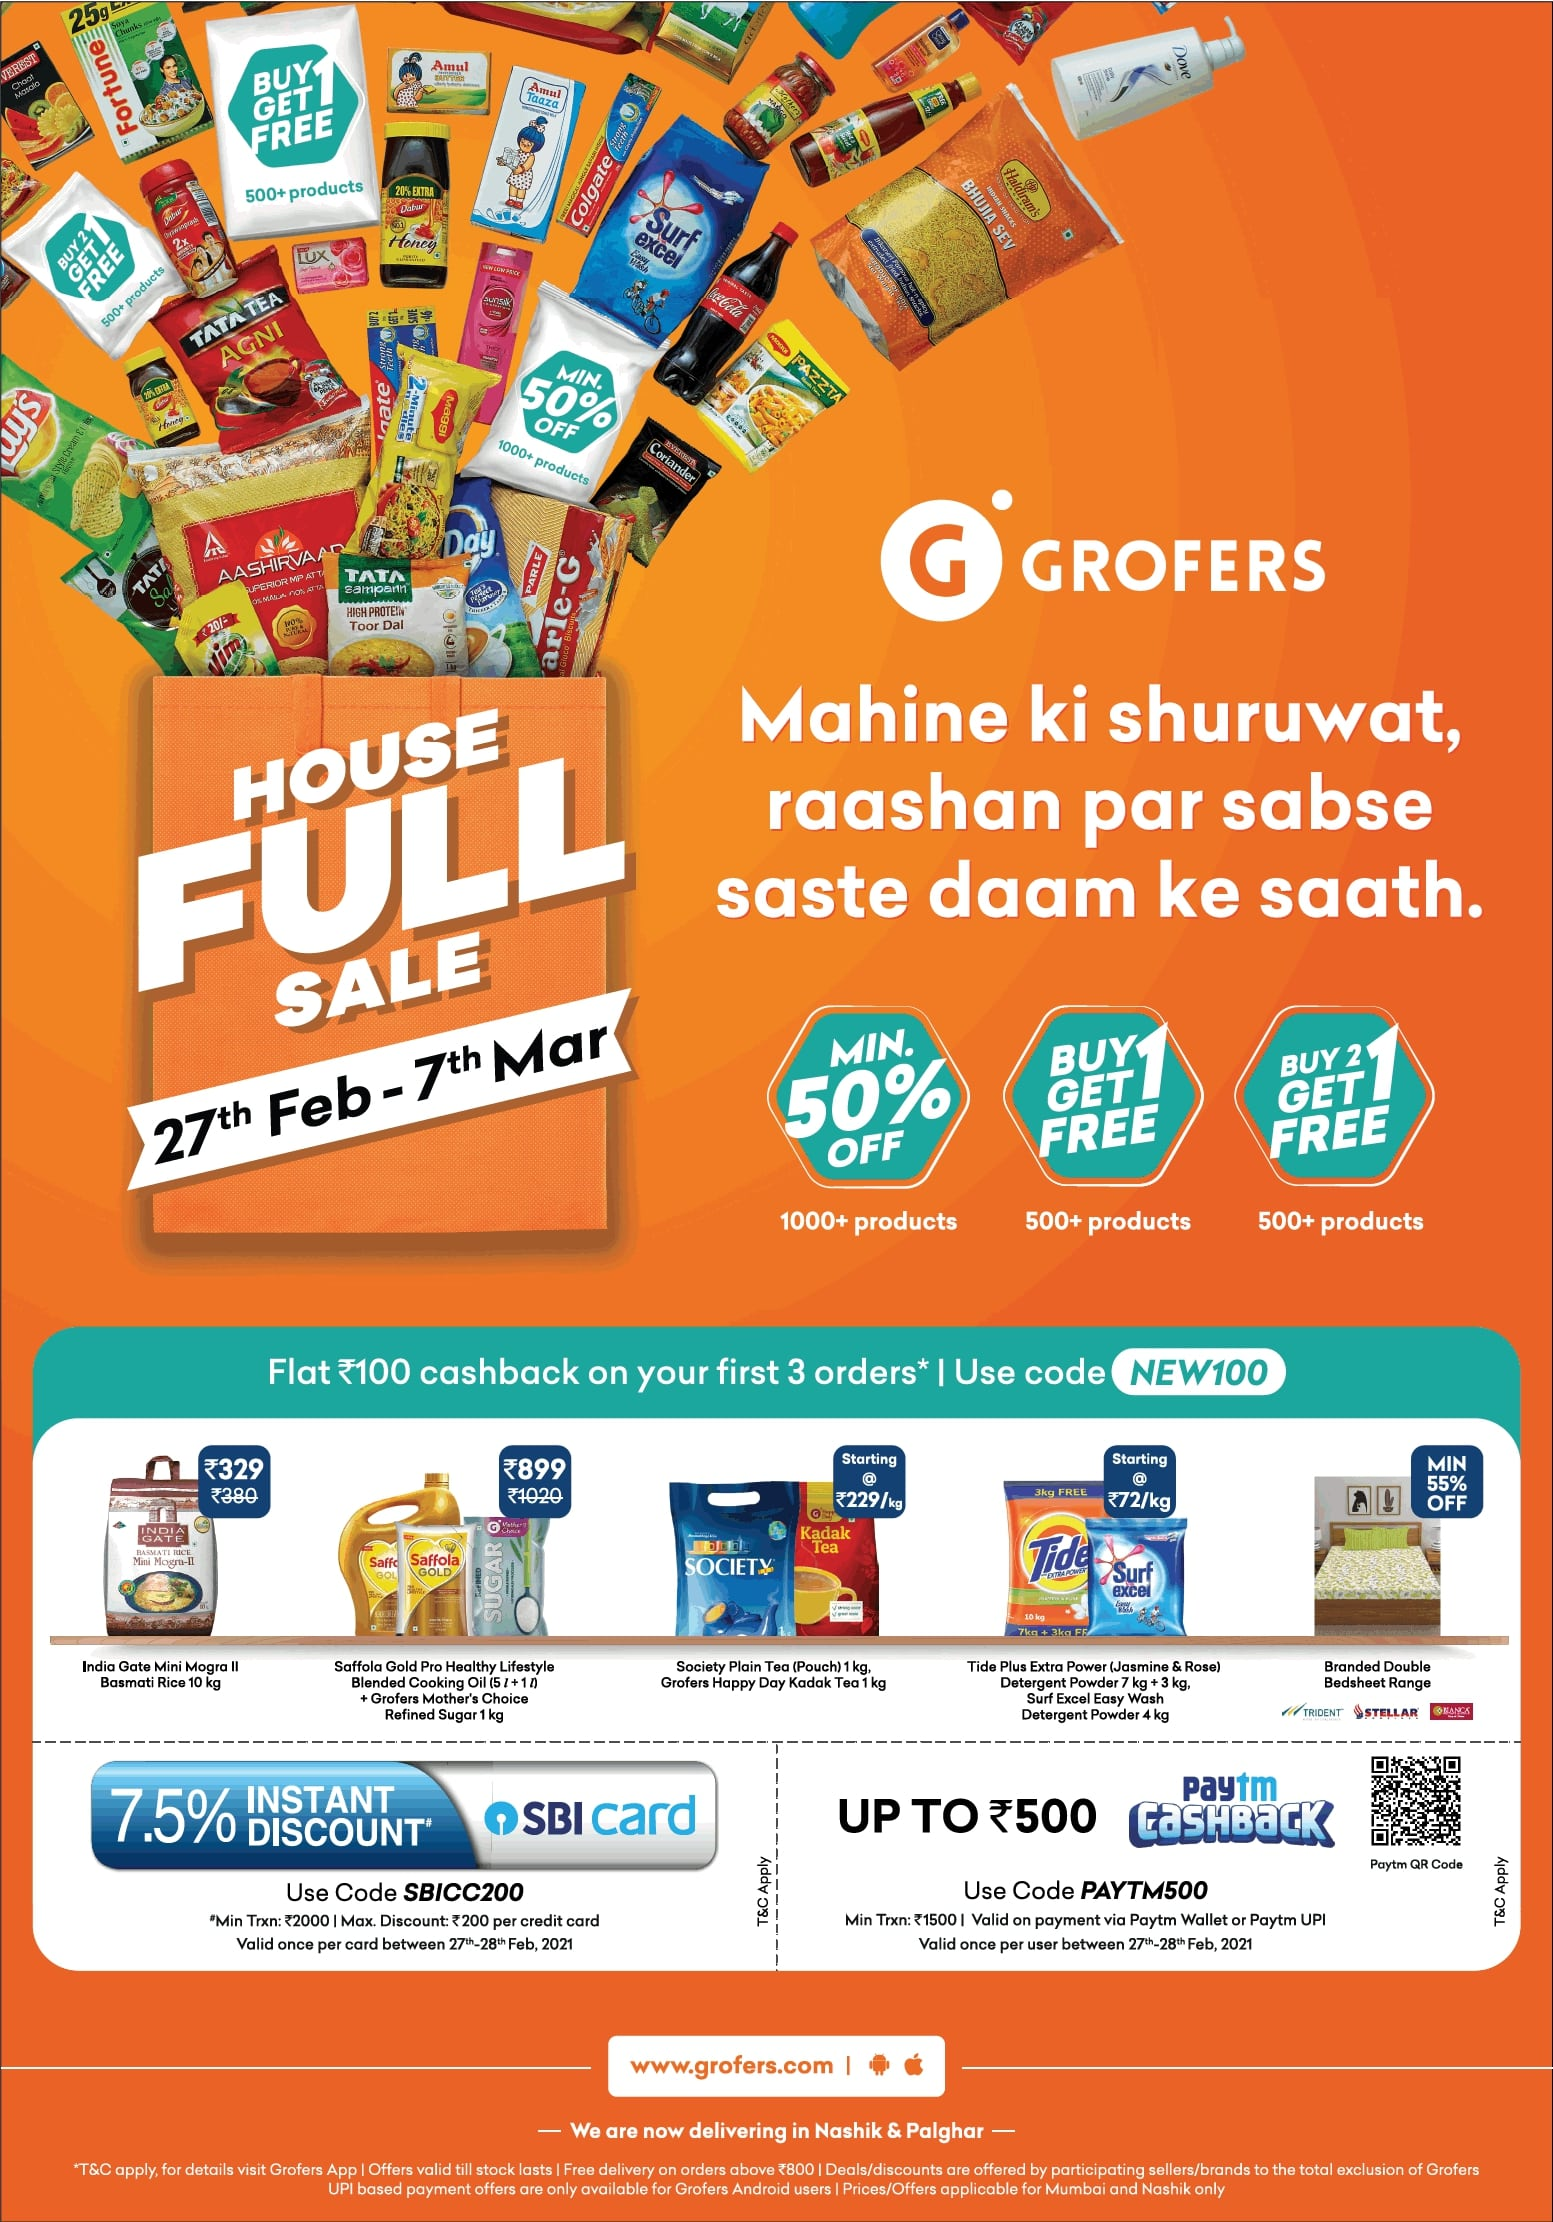 grofers-house-full-sale-ad-bombay-times-27-02-2021